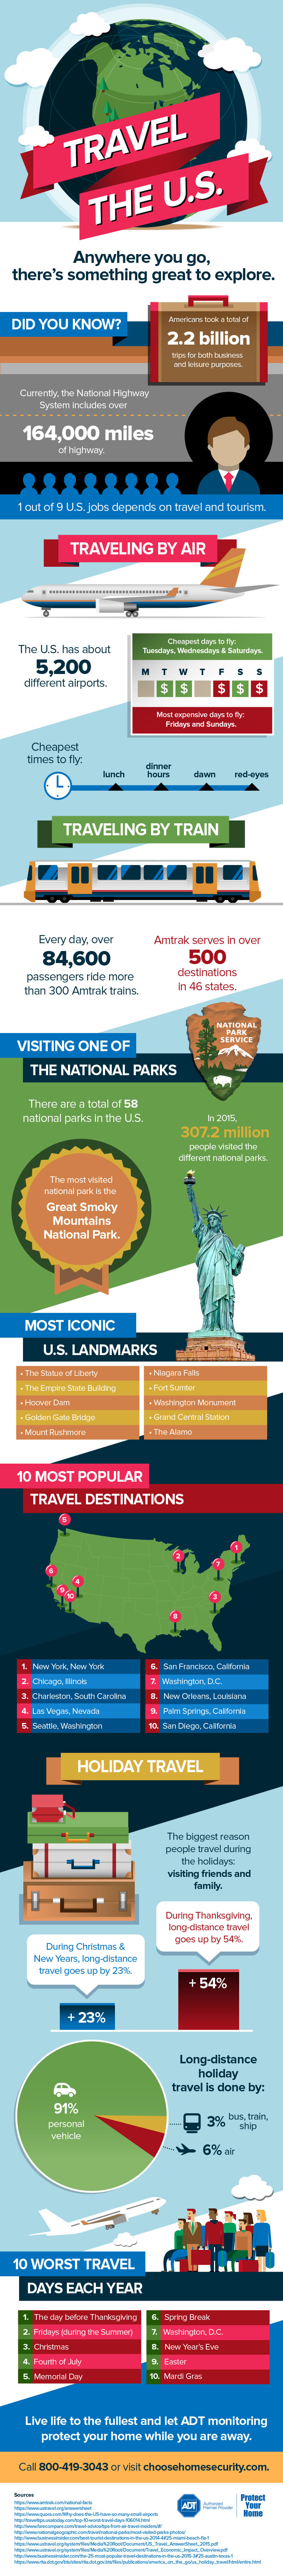 travel-usa-infographic-infographic-plaza